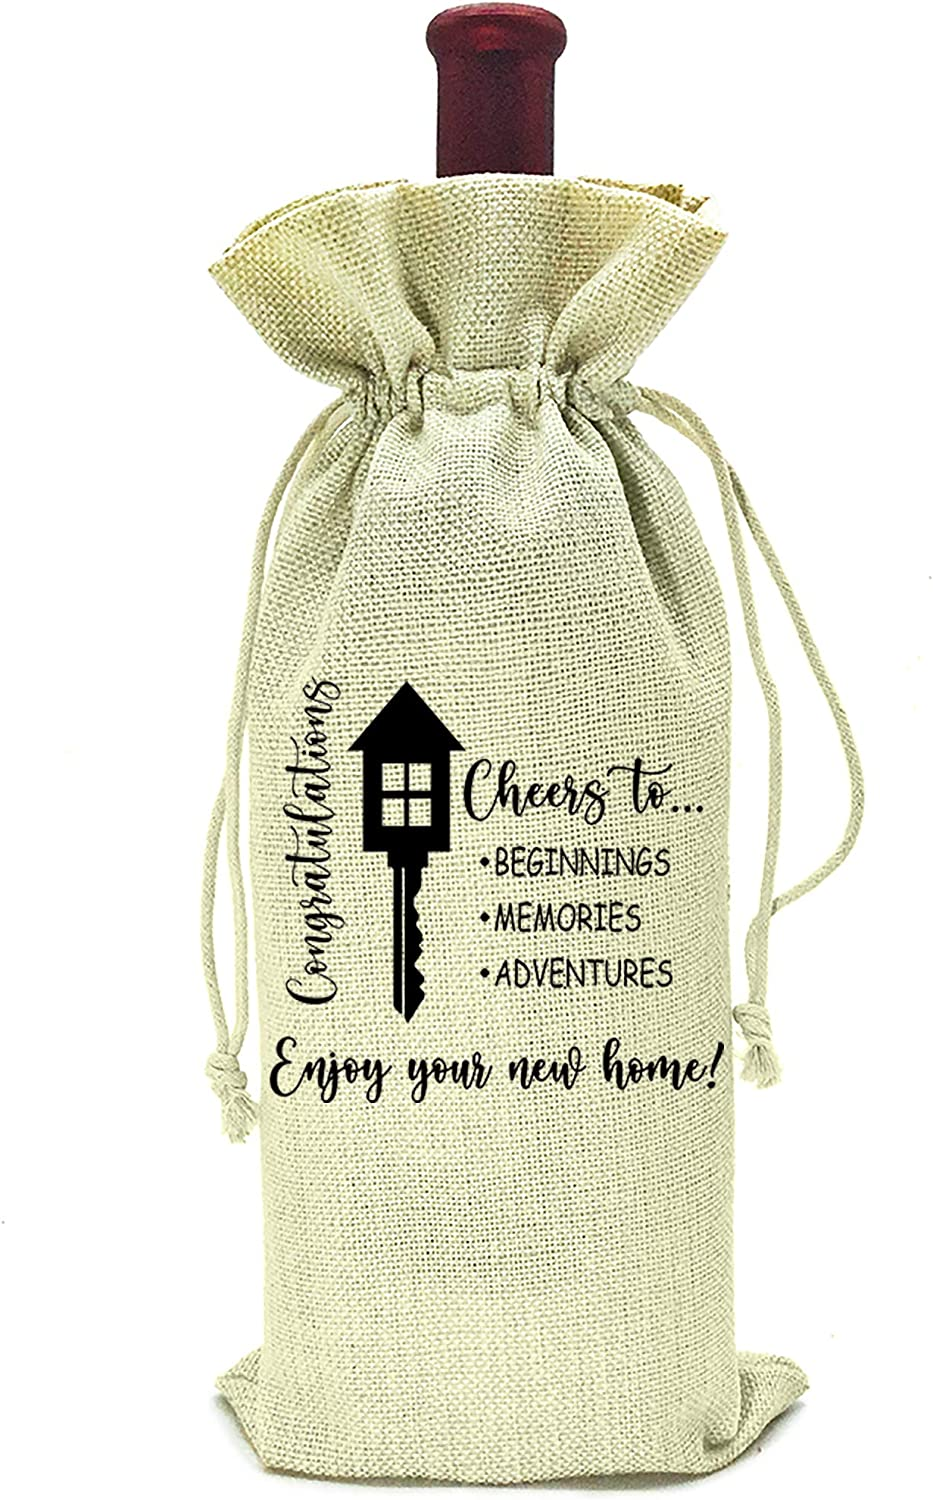 Housewarming Gifts,First New Home House Homeowner Gifts for Men, Women, mom,dad,daughter,son, Friends, Coworkers,Sweet home, New Home,new adventure,new memories,wine bag